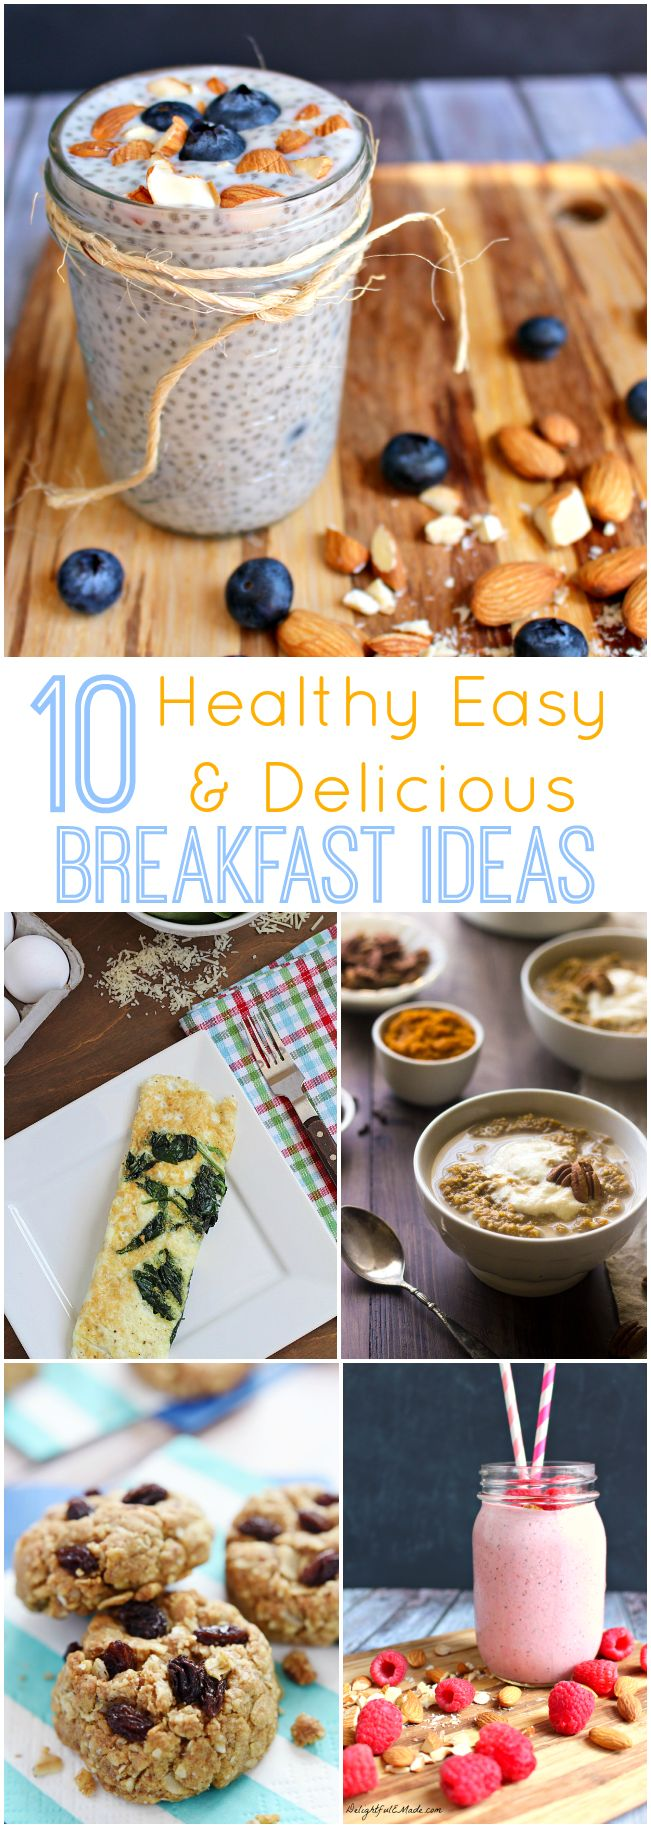 Get your day started off on the right foot!  Try these 10 Healthy Easy & Delicious Breakfast Ideas perfect for any day of the week!